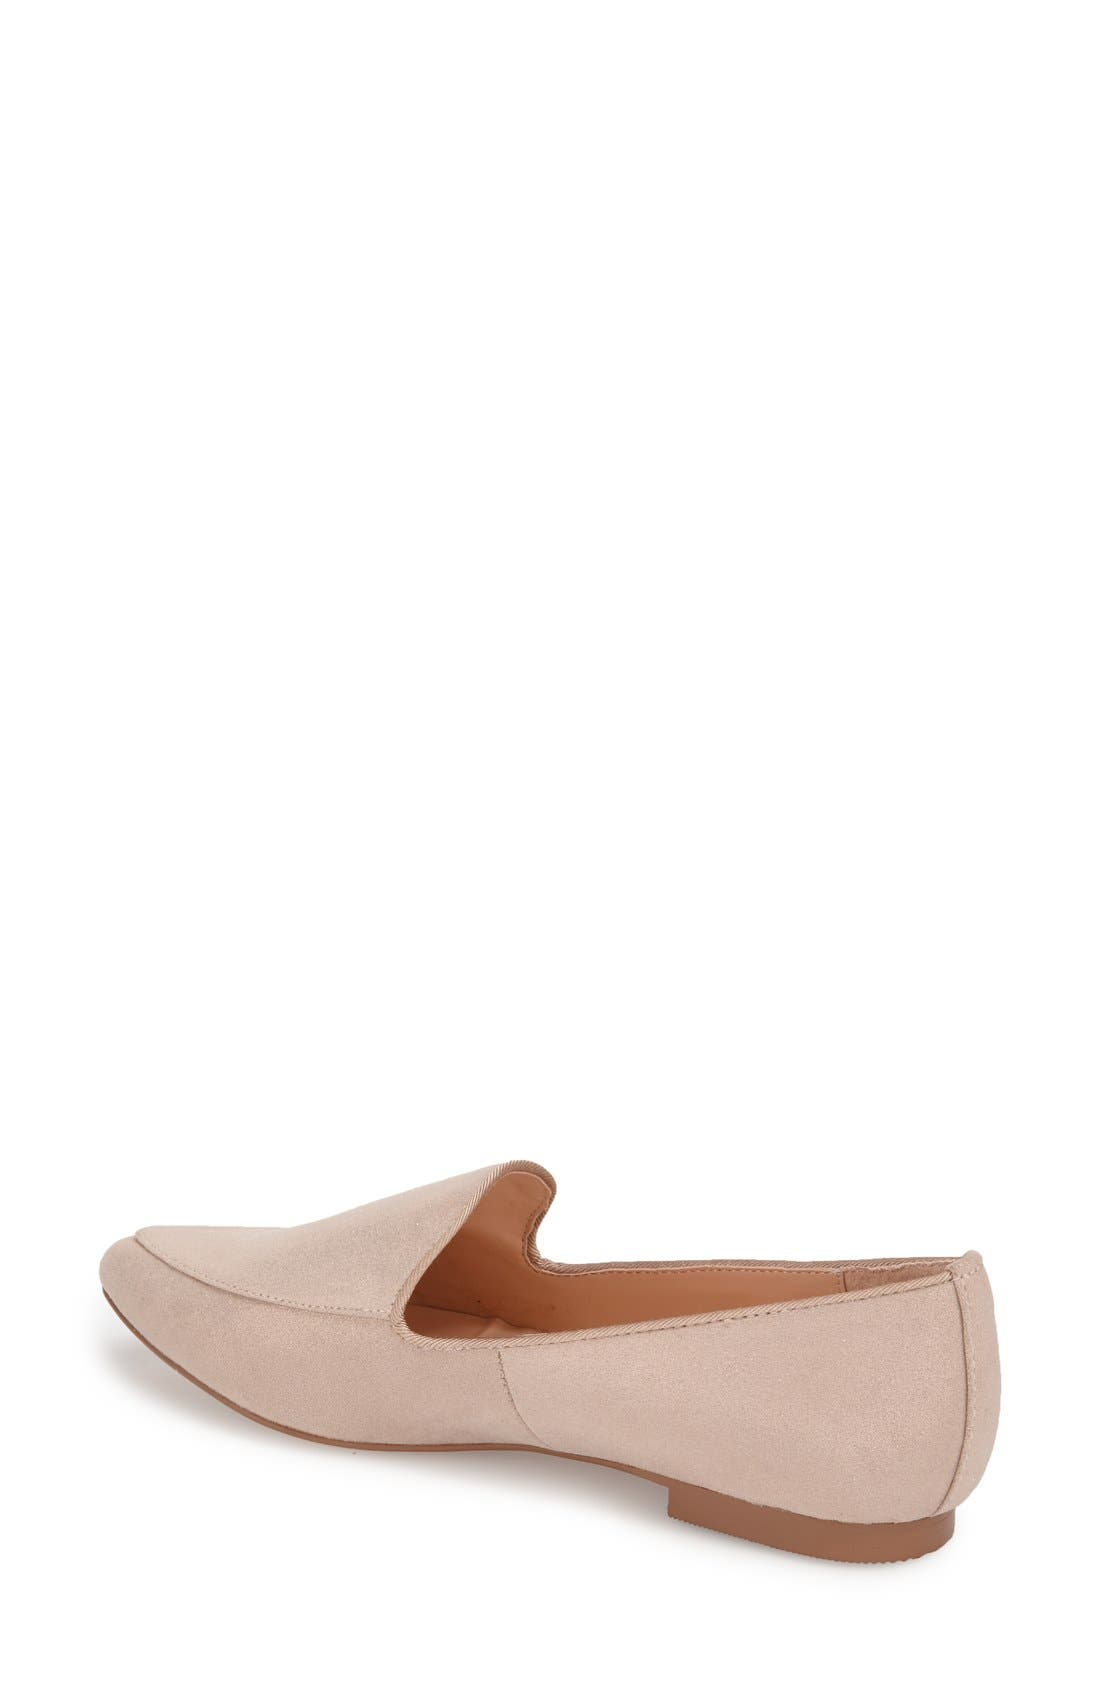 'Sean' Pointy Toe Loafer,                             Alternate thumbnail 3, color,                             285